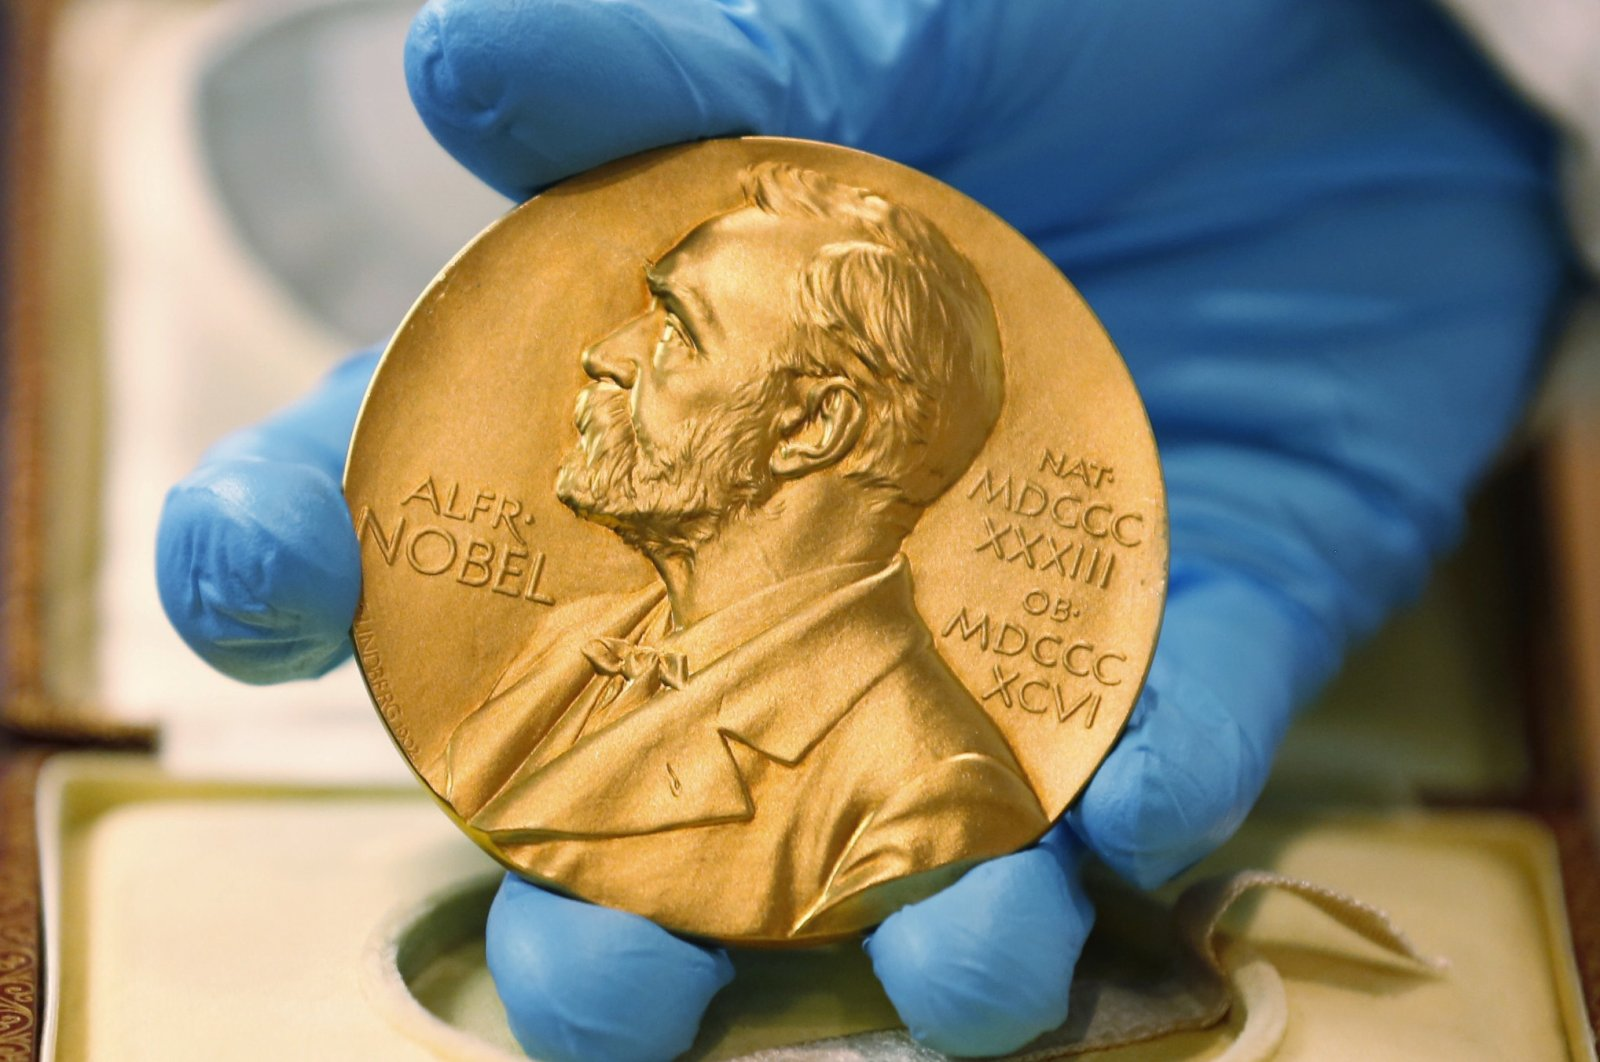 A national library employee shows the gold Nobel Prize medal awarded to the late novelist Gabriel Garcia Marquez, in Bogota, Colombia, April 17, 2015. (AP Photo)